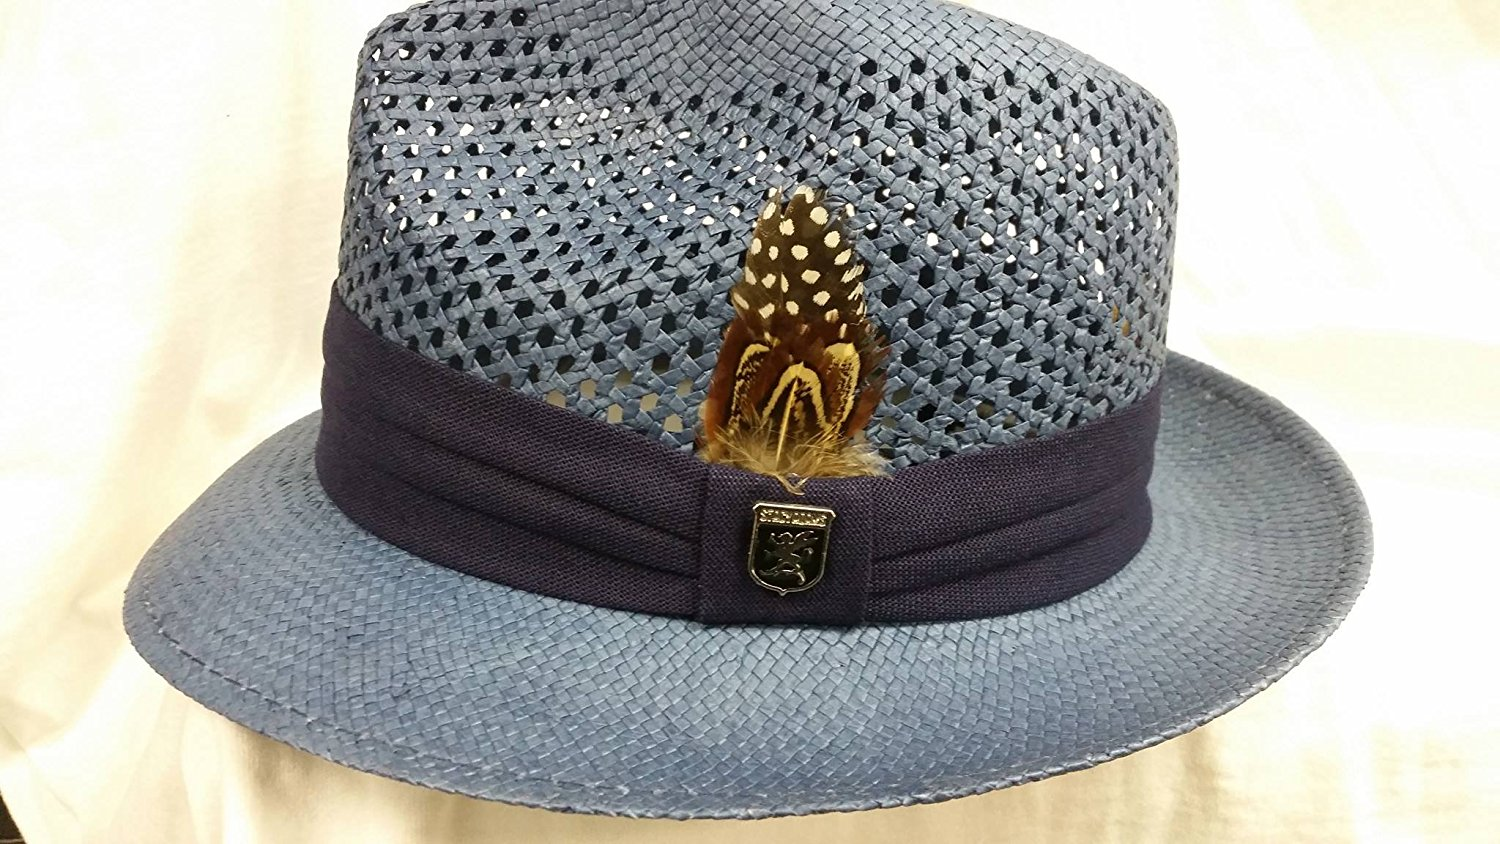 bbf2f681067 Get Quotations · Stacy Adams Sa607-navy Vent Fedora Summer Navy Hat Size Large  New